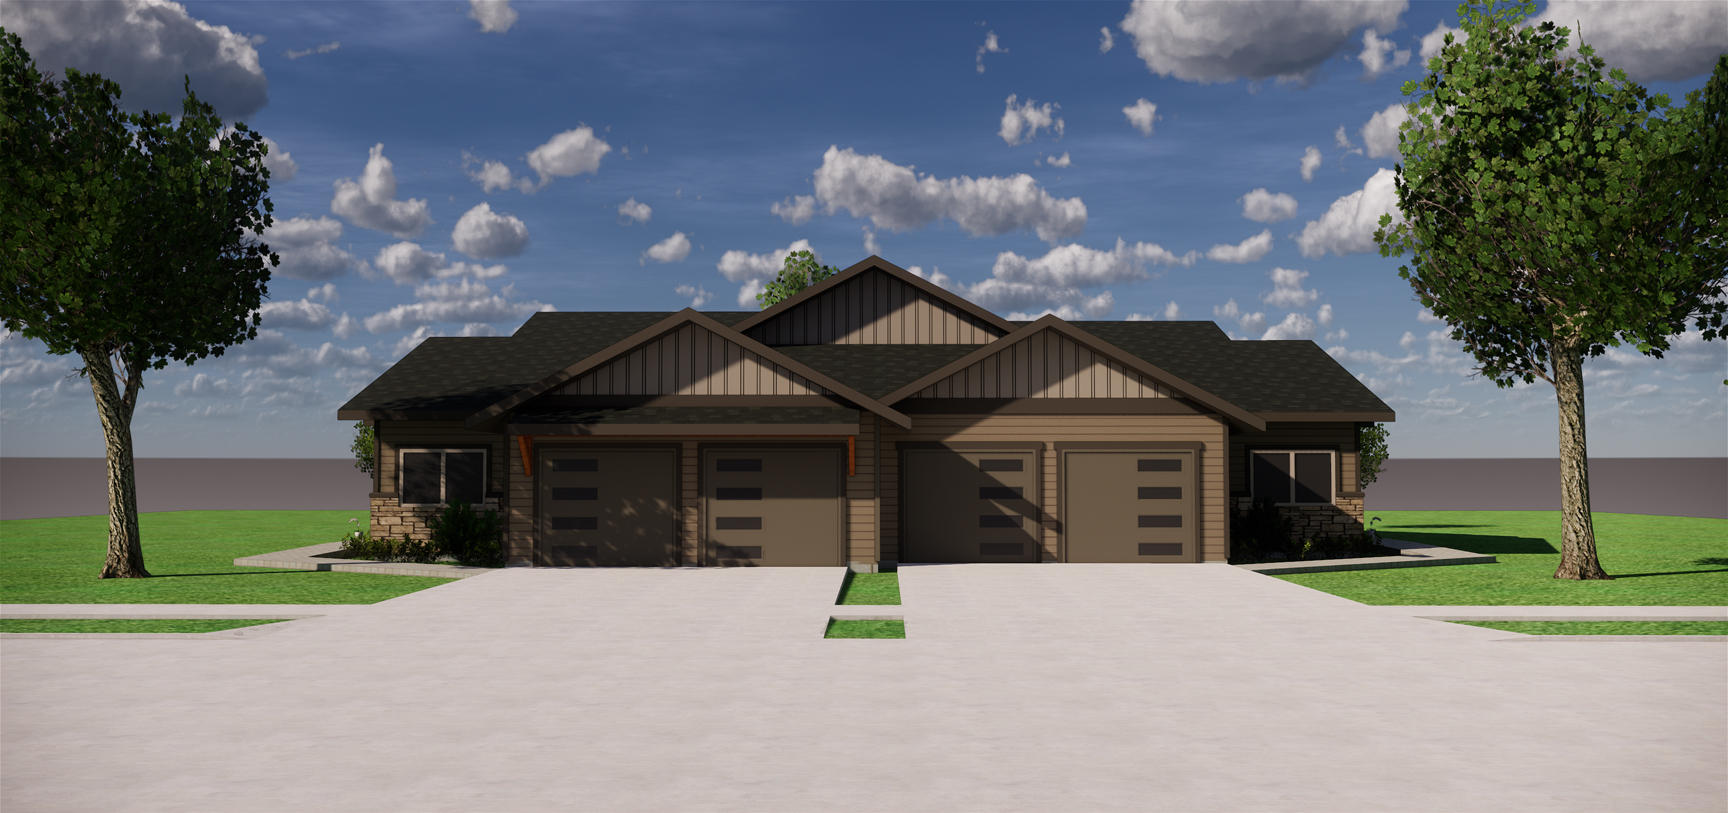 Property Image #4 for MLS #21914344